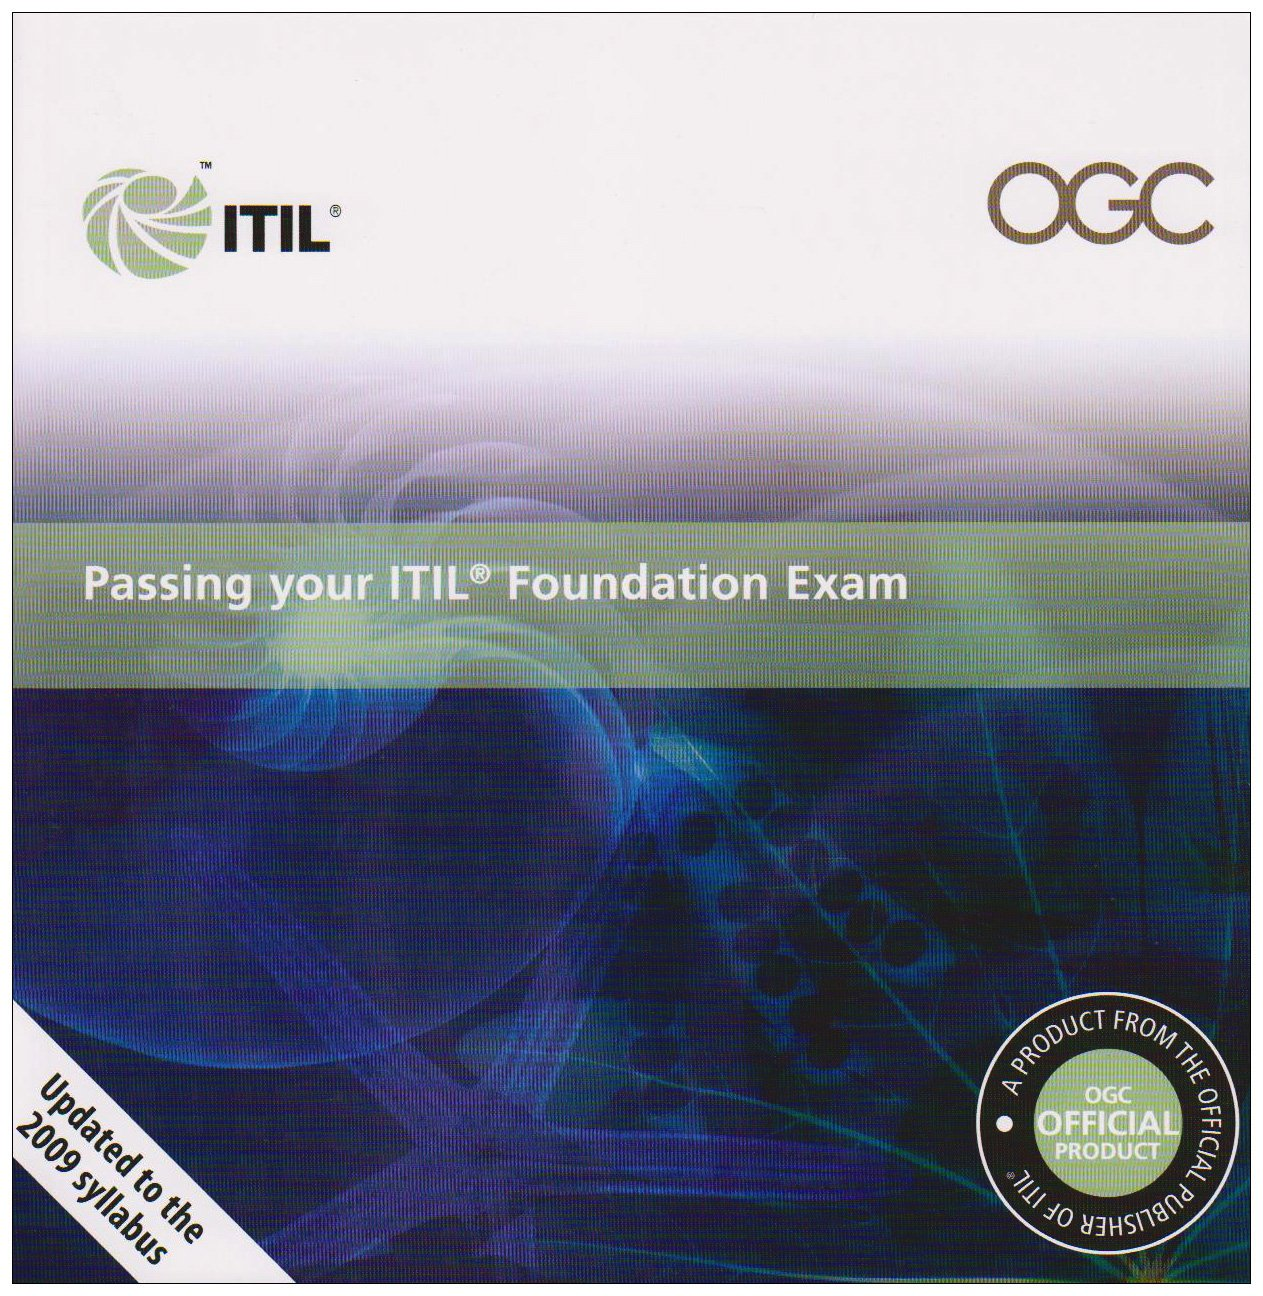 Passing Your Itil Foundation Exam Amazon Christian F Nissen